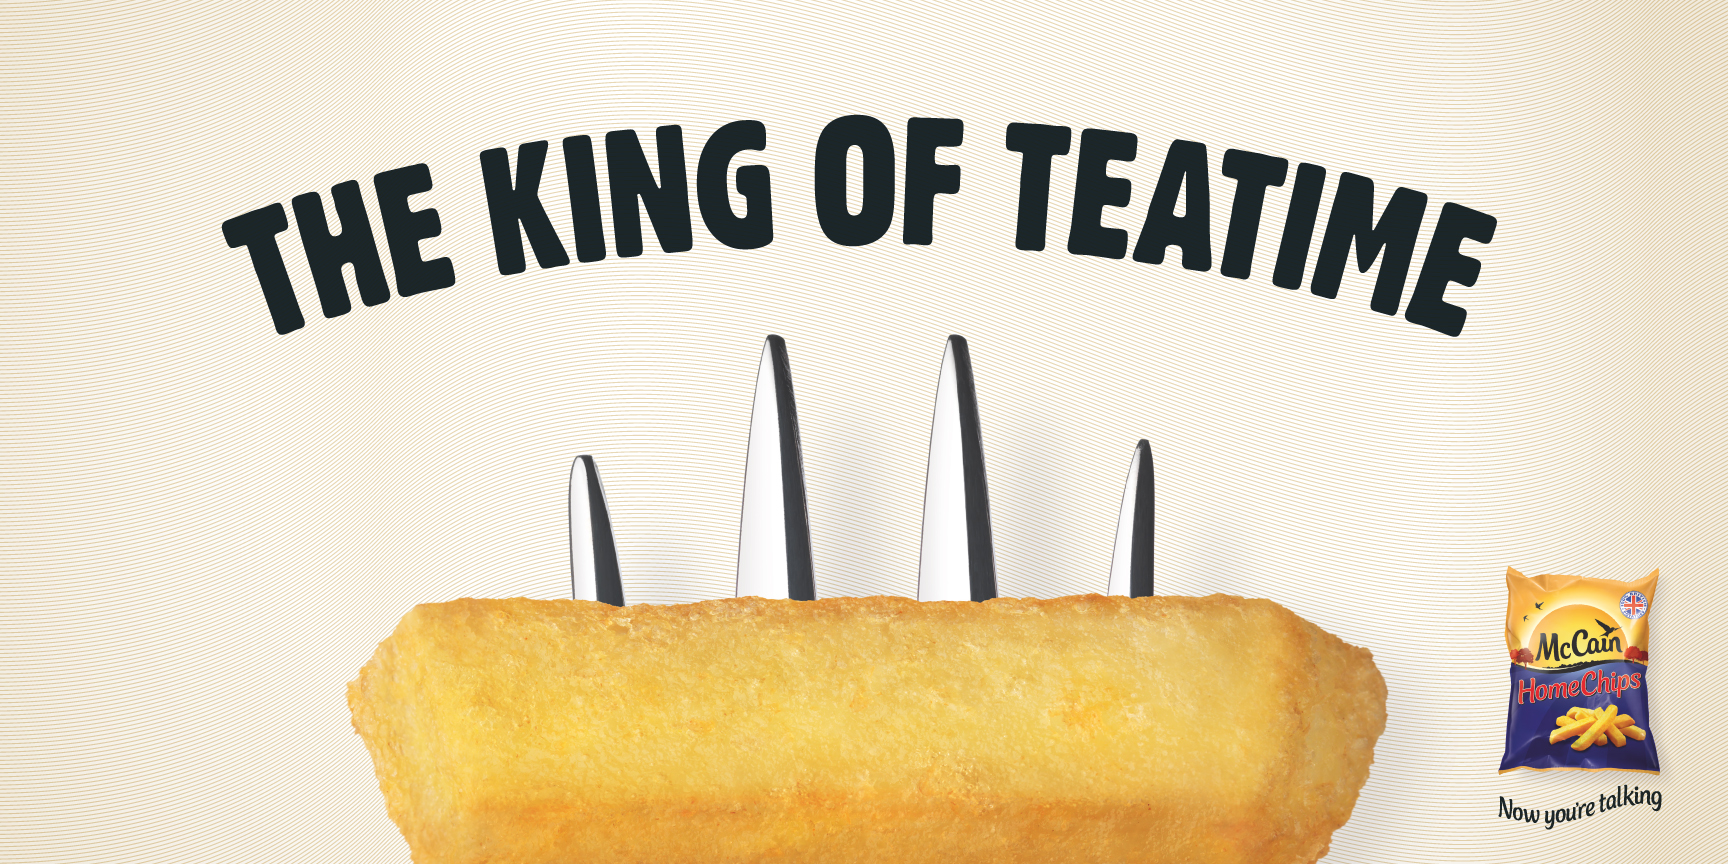 The King of teatime